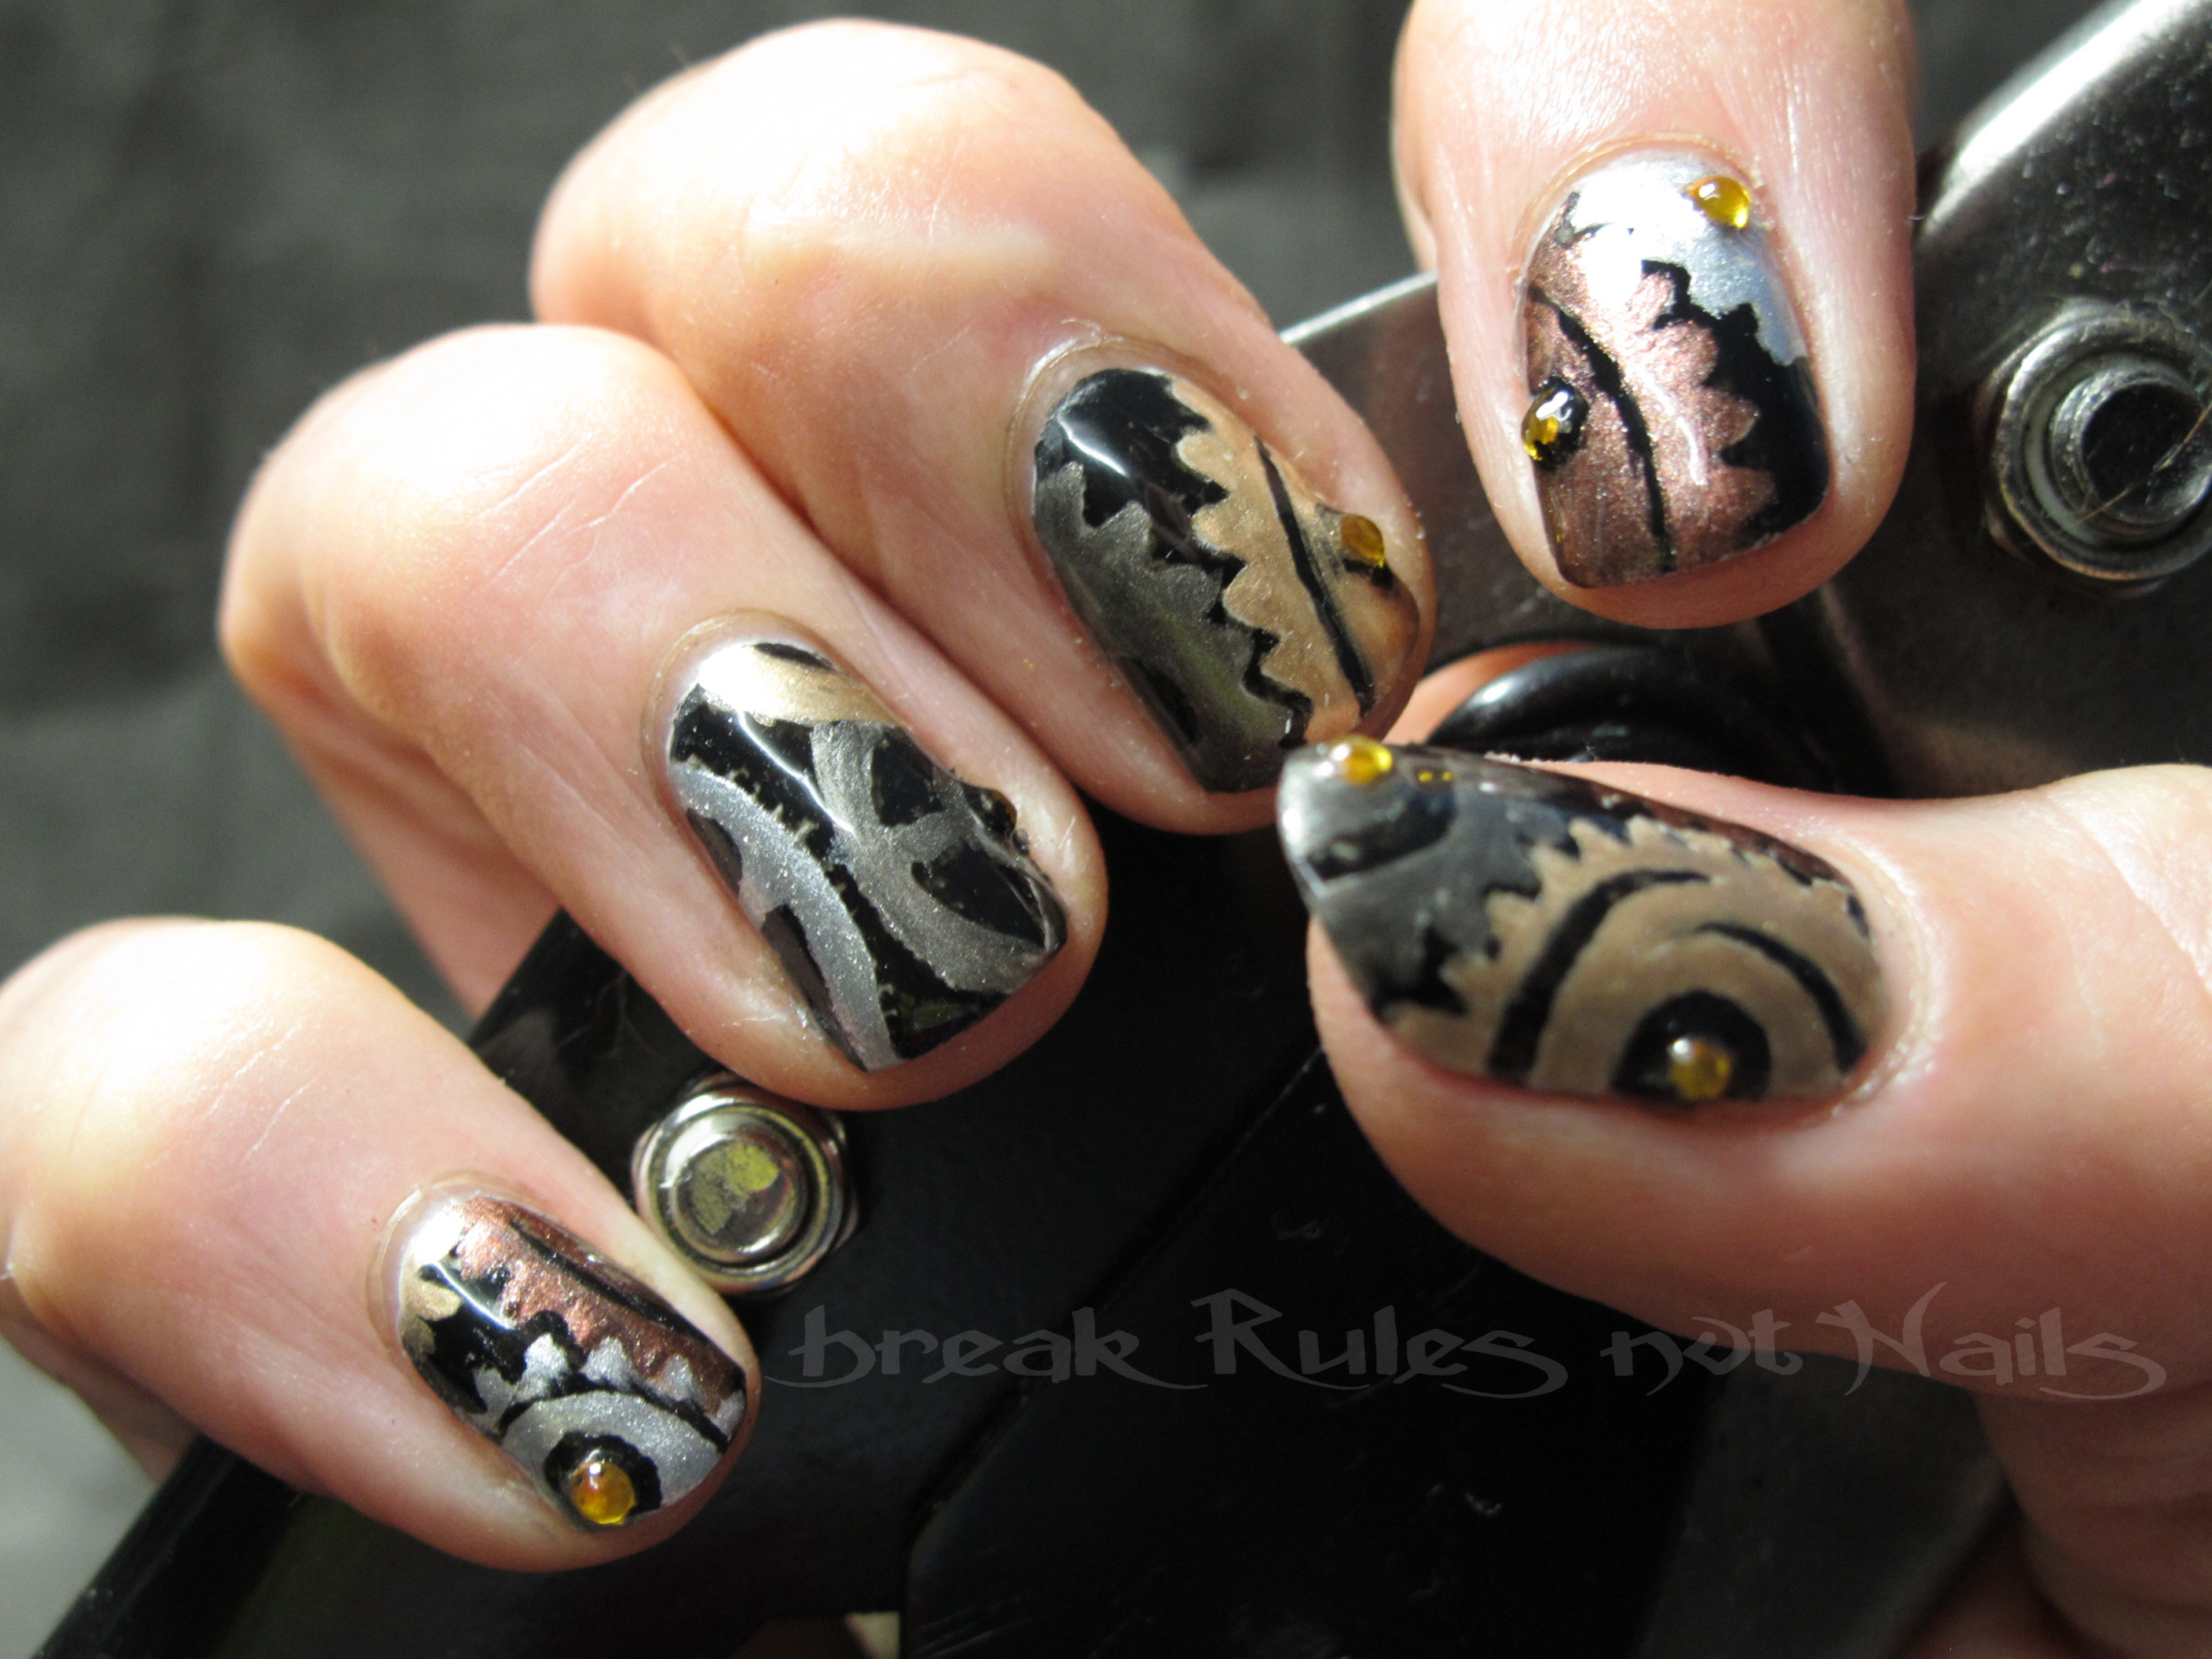 Steampunk nail art break rules not nails img9517 industrail revolution prinsesfo Images